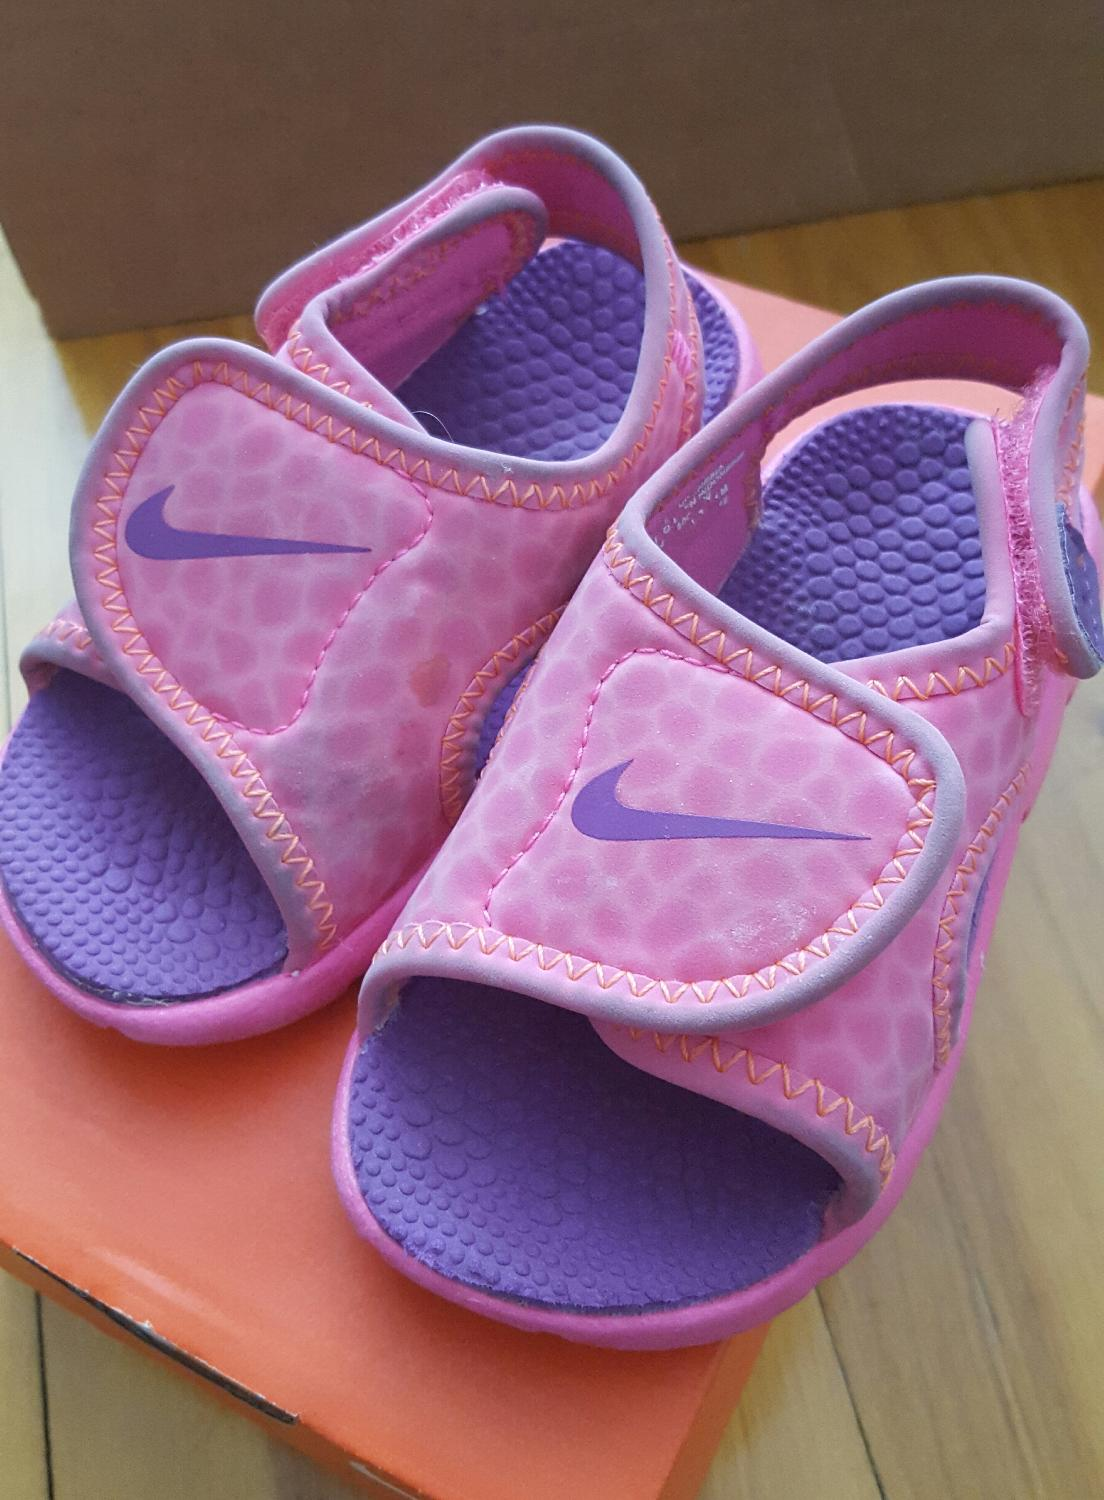 Give your little lady the best of all baby shoes with a variety of designs to match any outfit. Browse our selection of toddler sandals and casual shoes for everyday outings, plus sneakers for playtime.